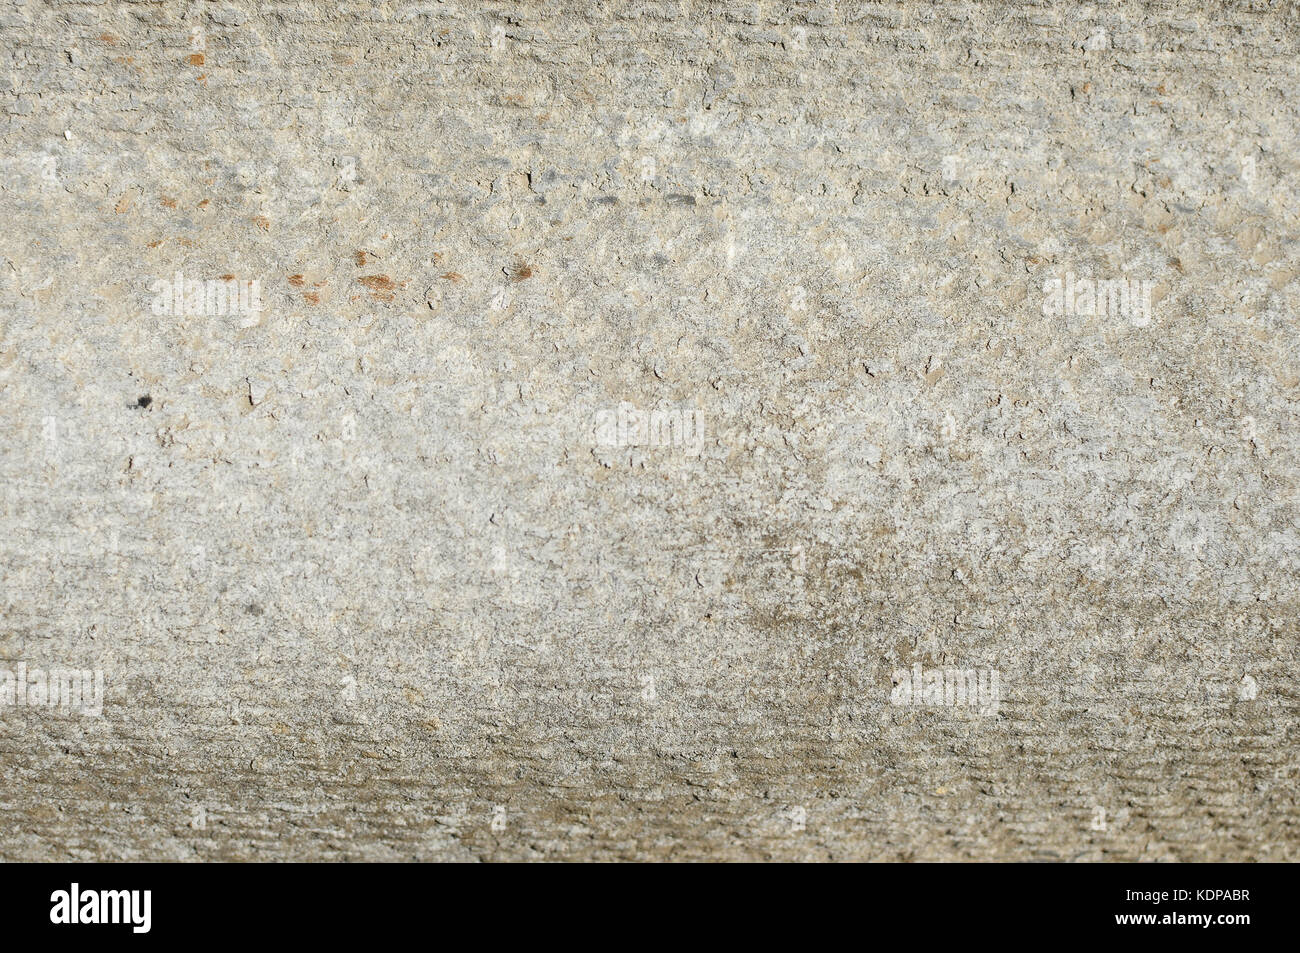 Close-up texture of gray wavy slate sheet fragment. Horizontal orientation - Stock Image